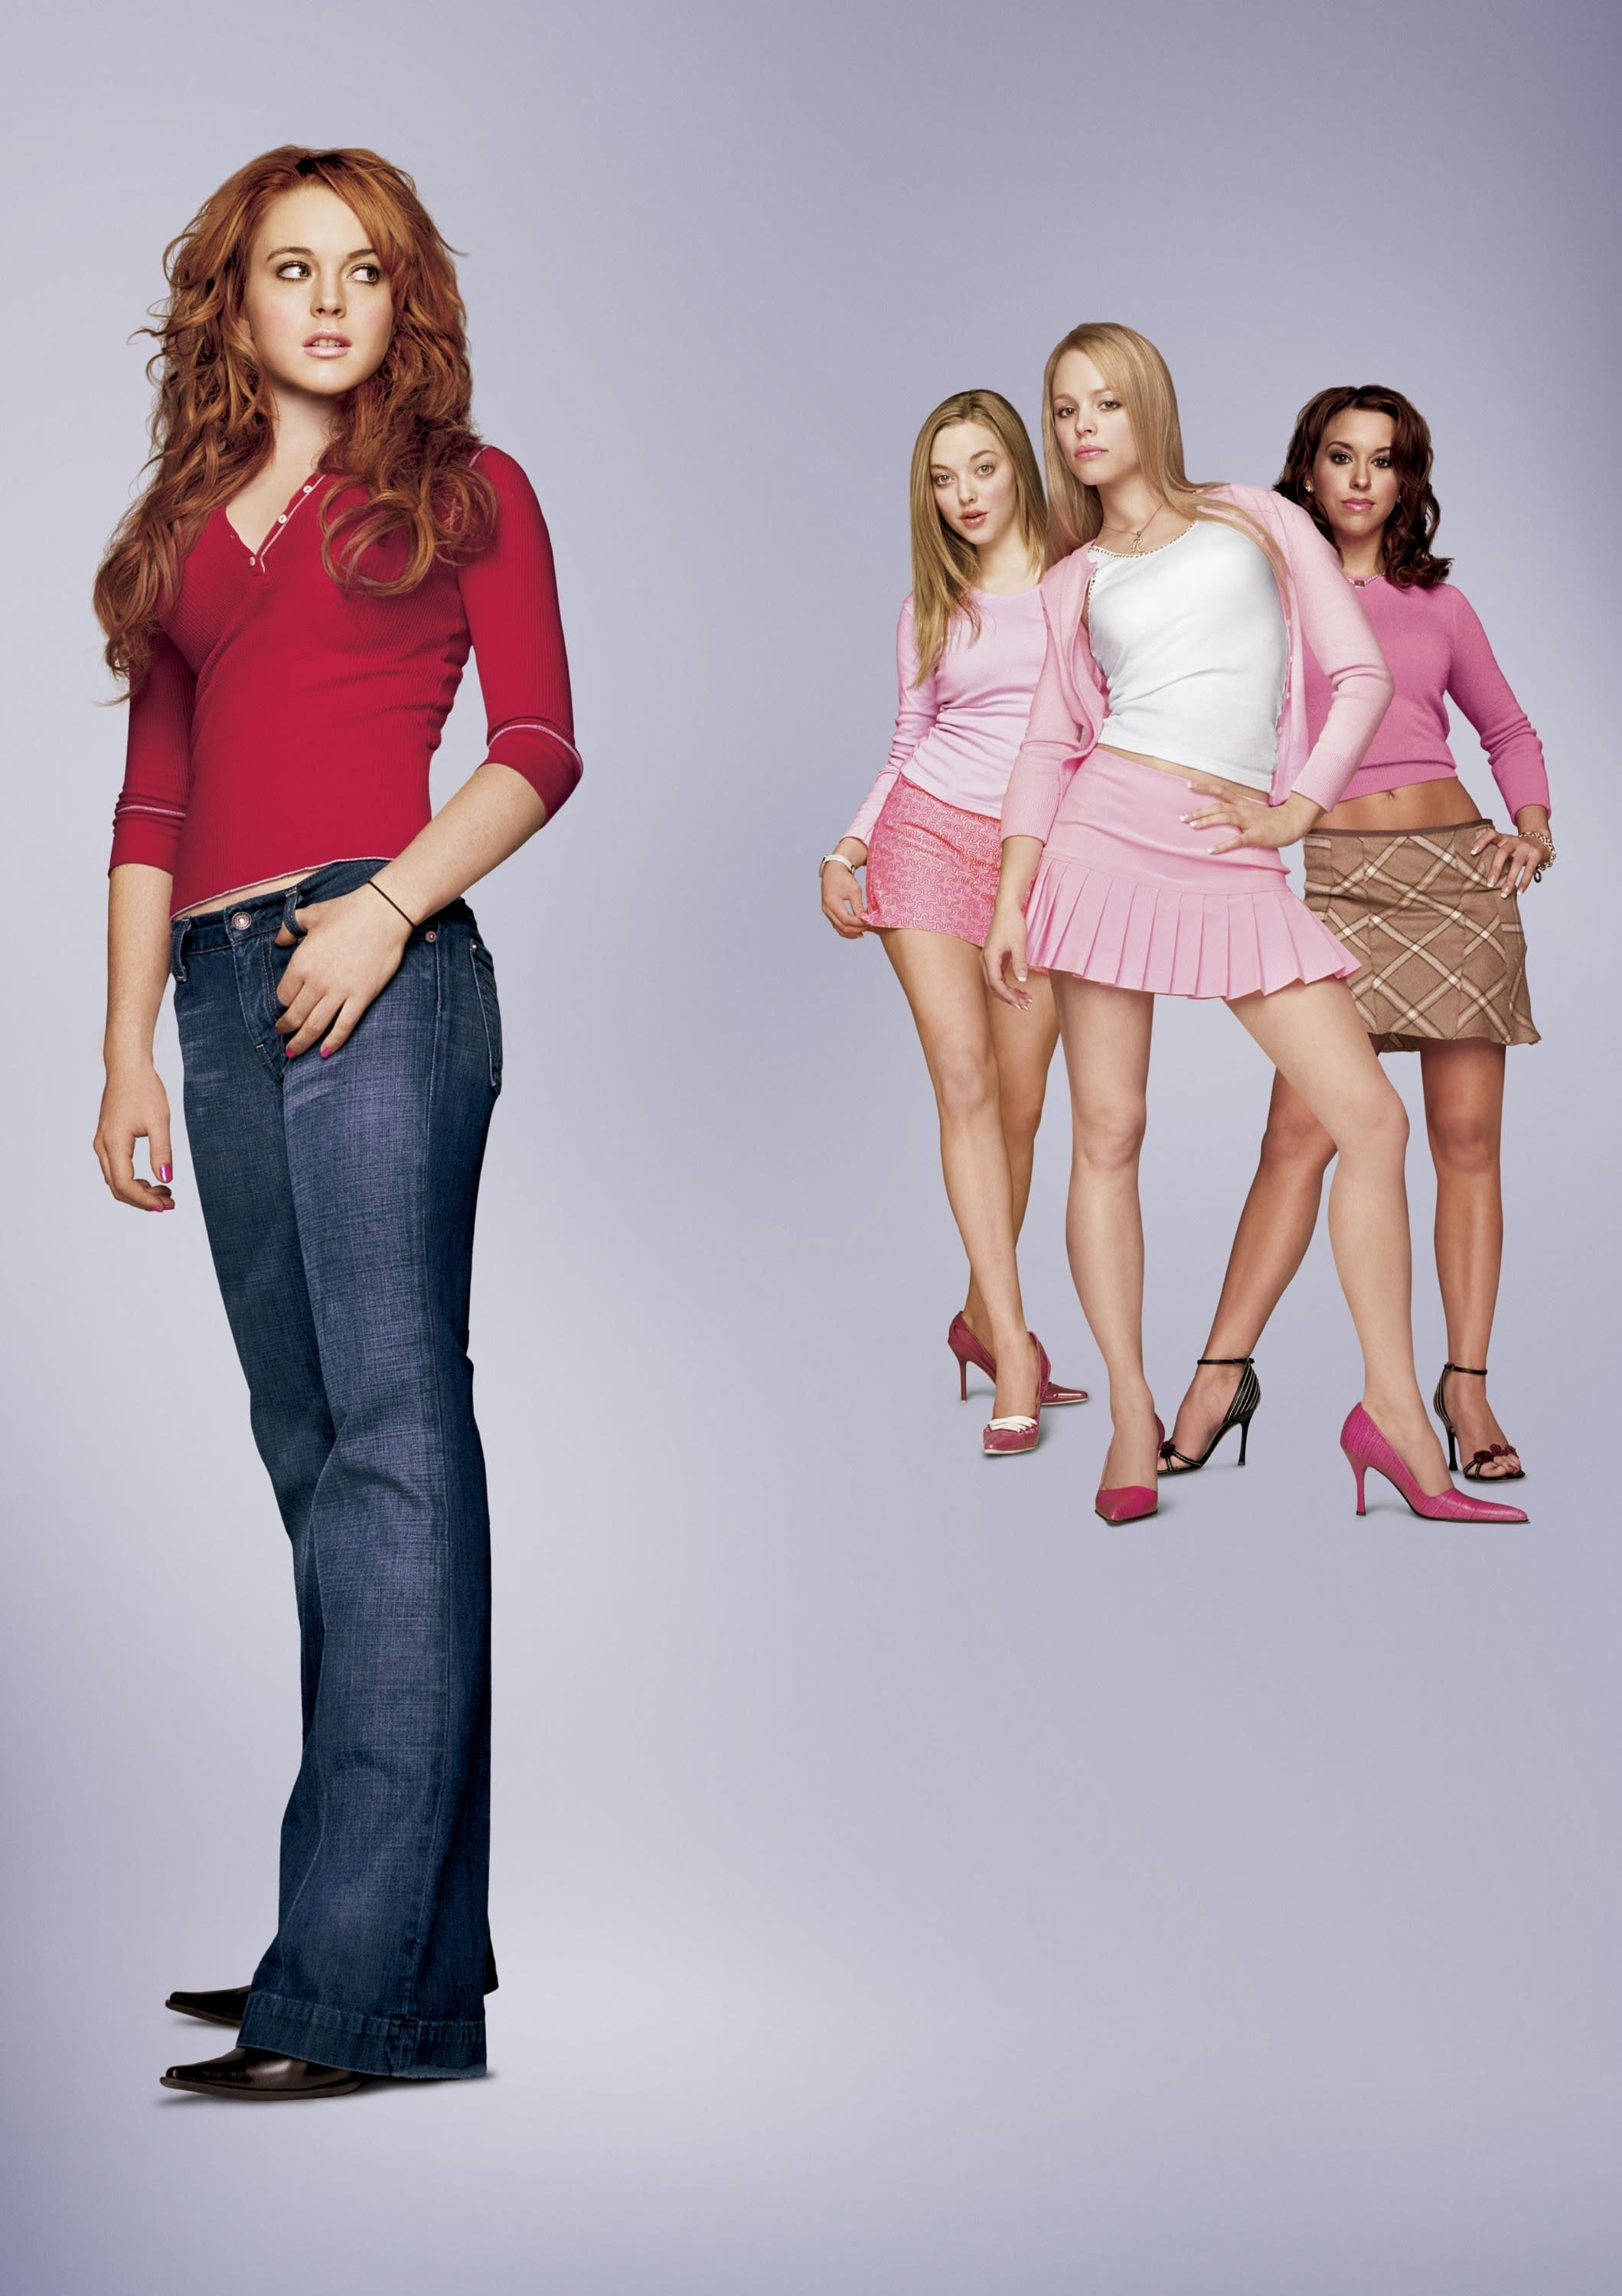 Mean Girls poster with the plastics and Cady